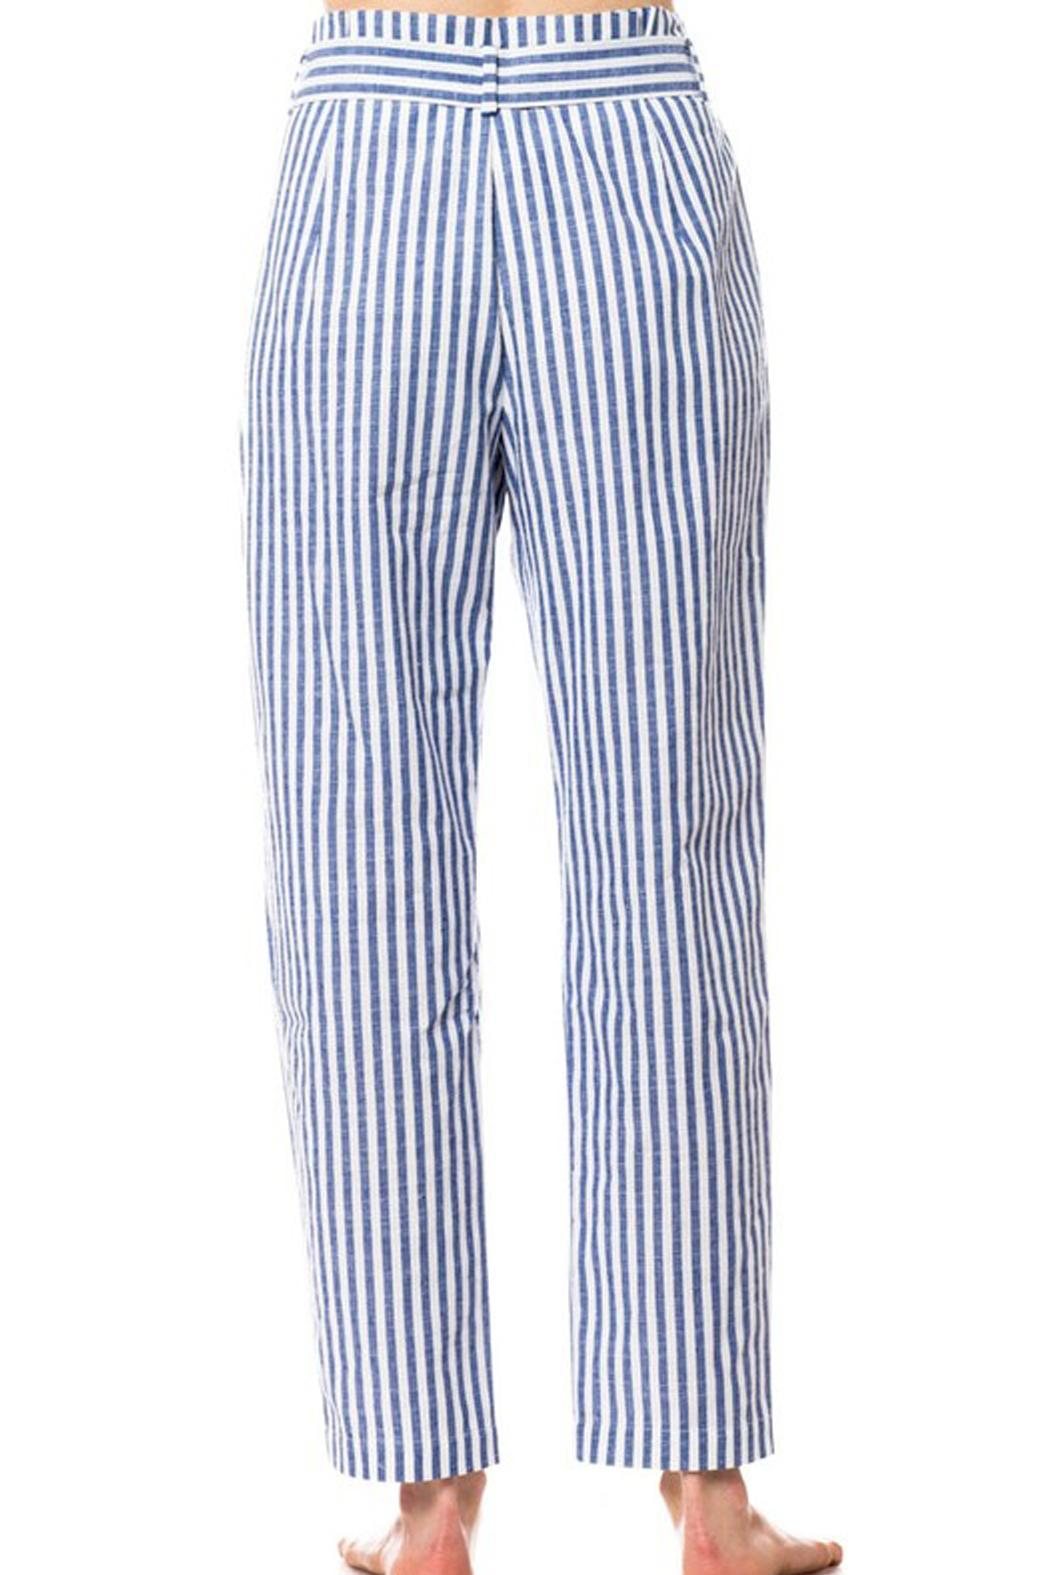 Love Tree Striped Tie Pants - Side Cropped Image